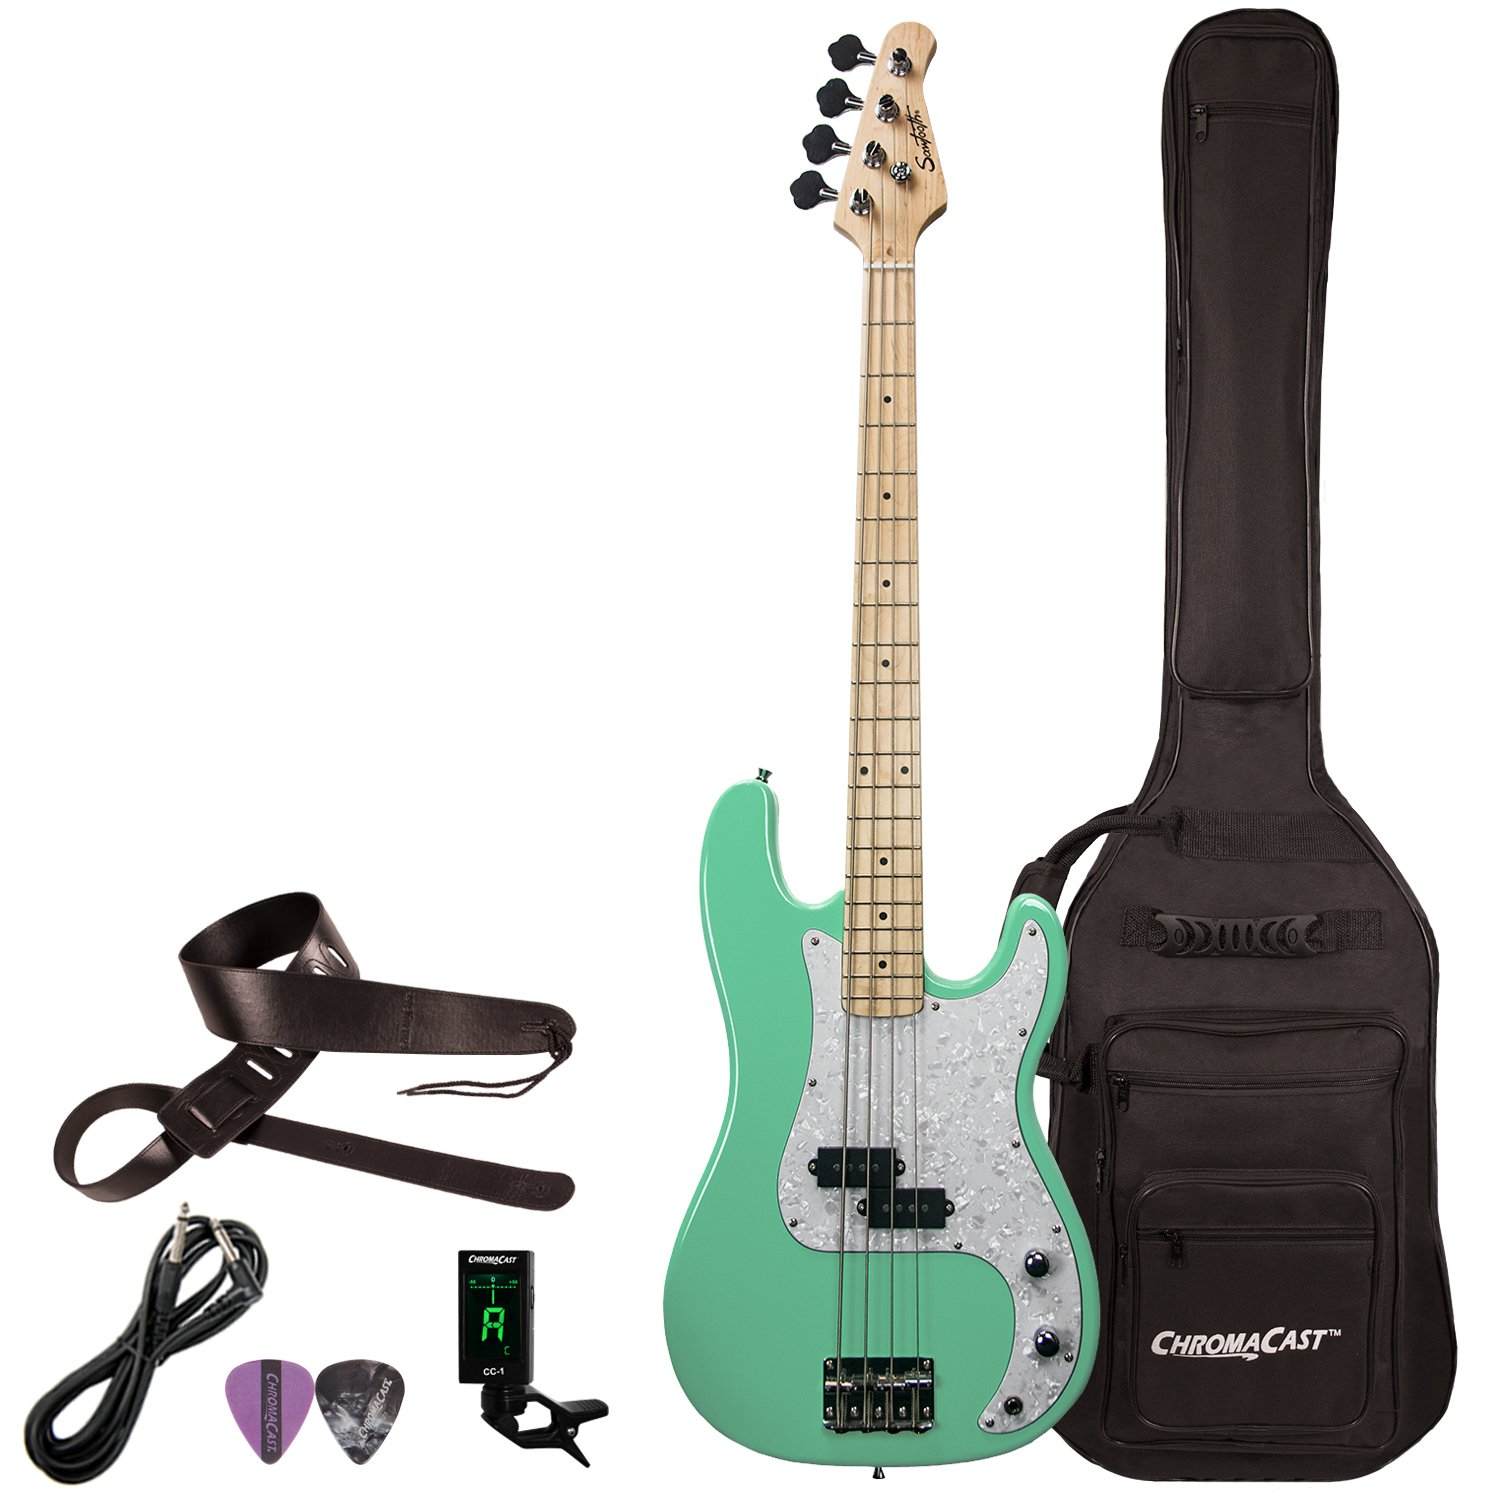 Sawtooth ST-PB-SGRP-KIT-1 EP Series Electric Bass Guitar with Gig Bag & Accessories, Surf Green with White Pearloid Pickguard